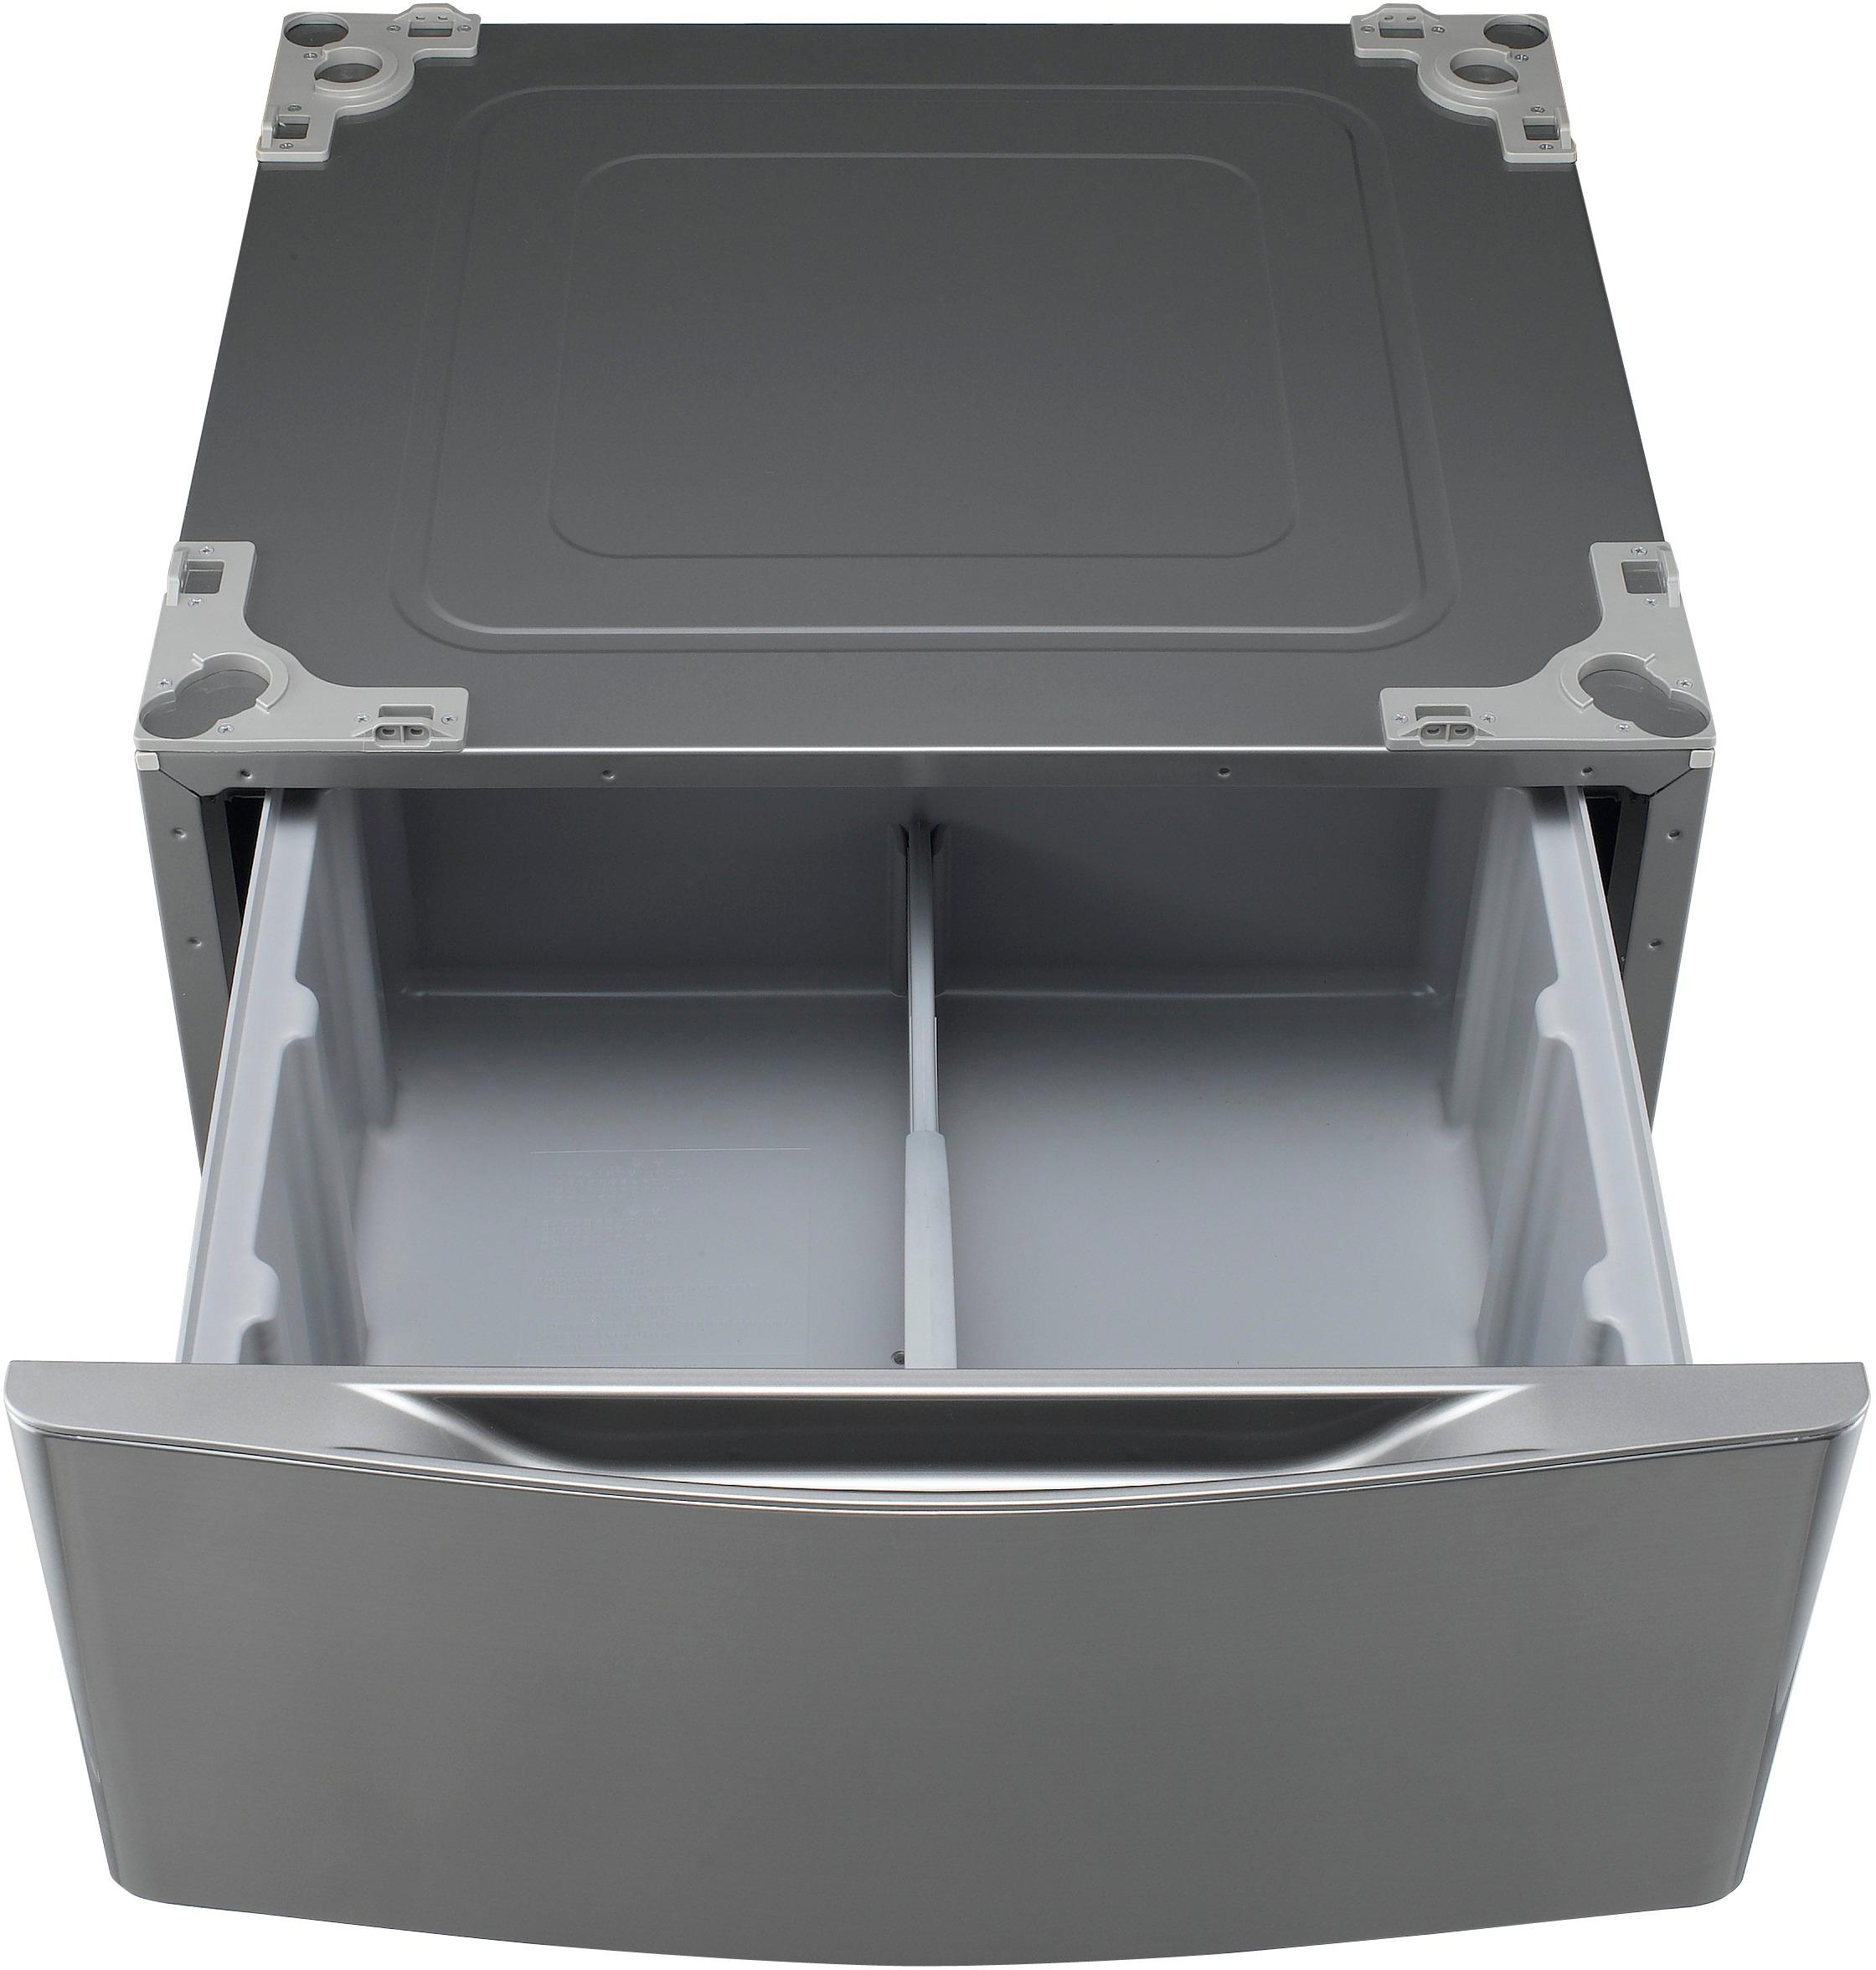 Lg Washer Dryer Laundry Pedestal For Most Lg Washers And